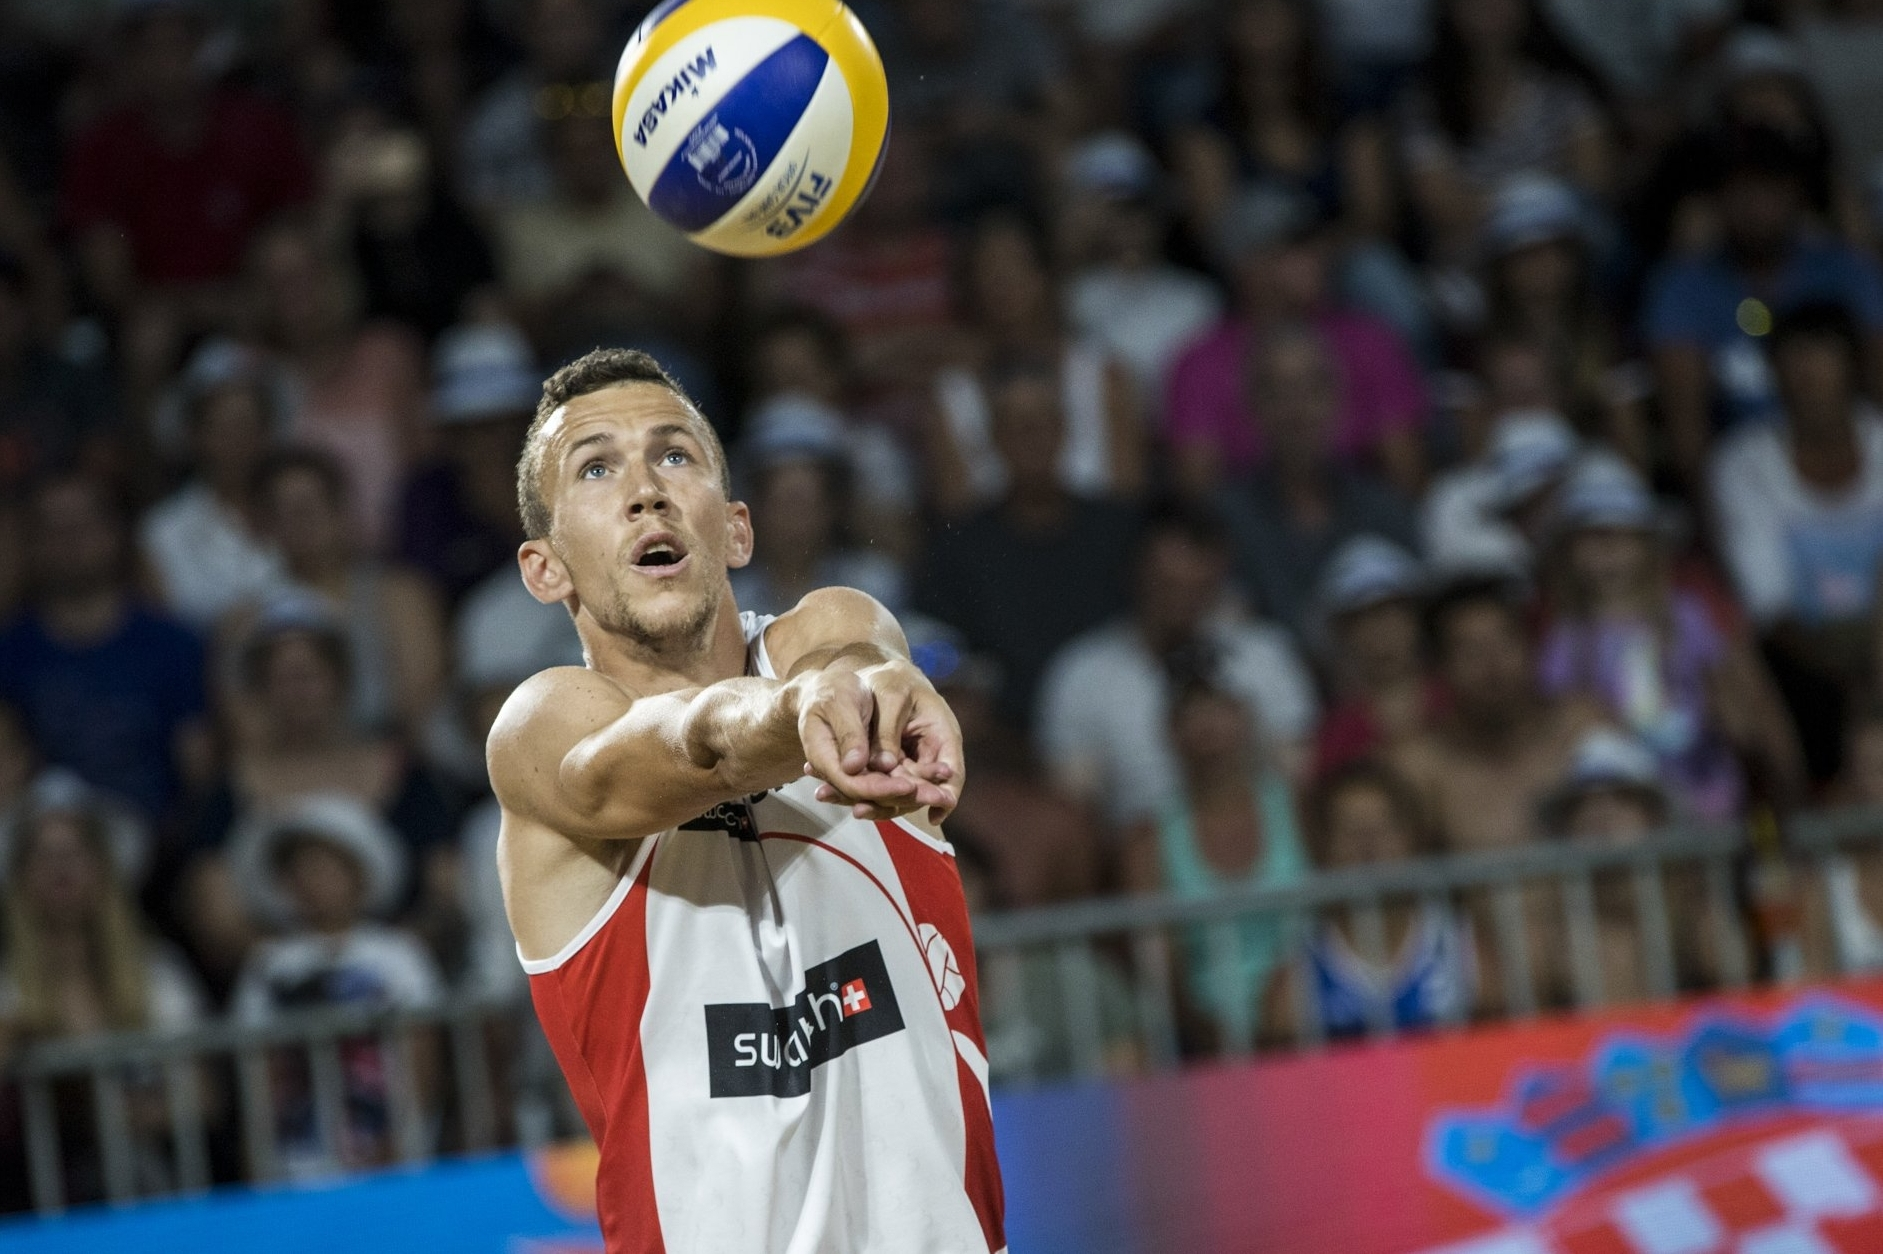 Perišić impressed in the second set against the Americans. Photocredit: Samo Vidic.